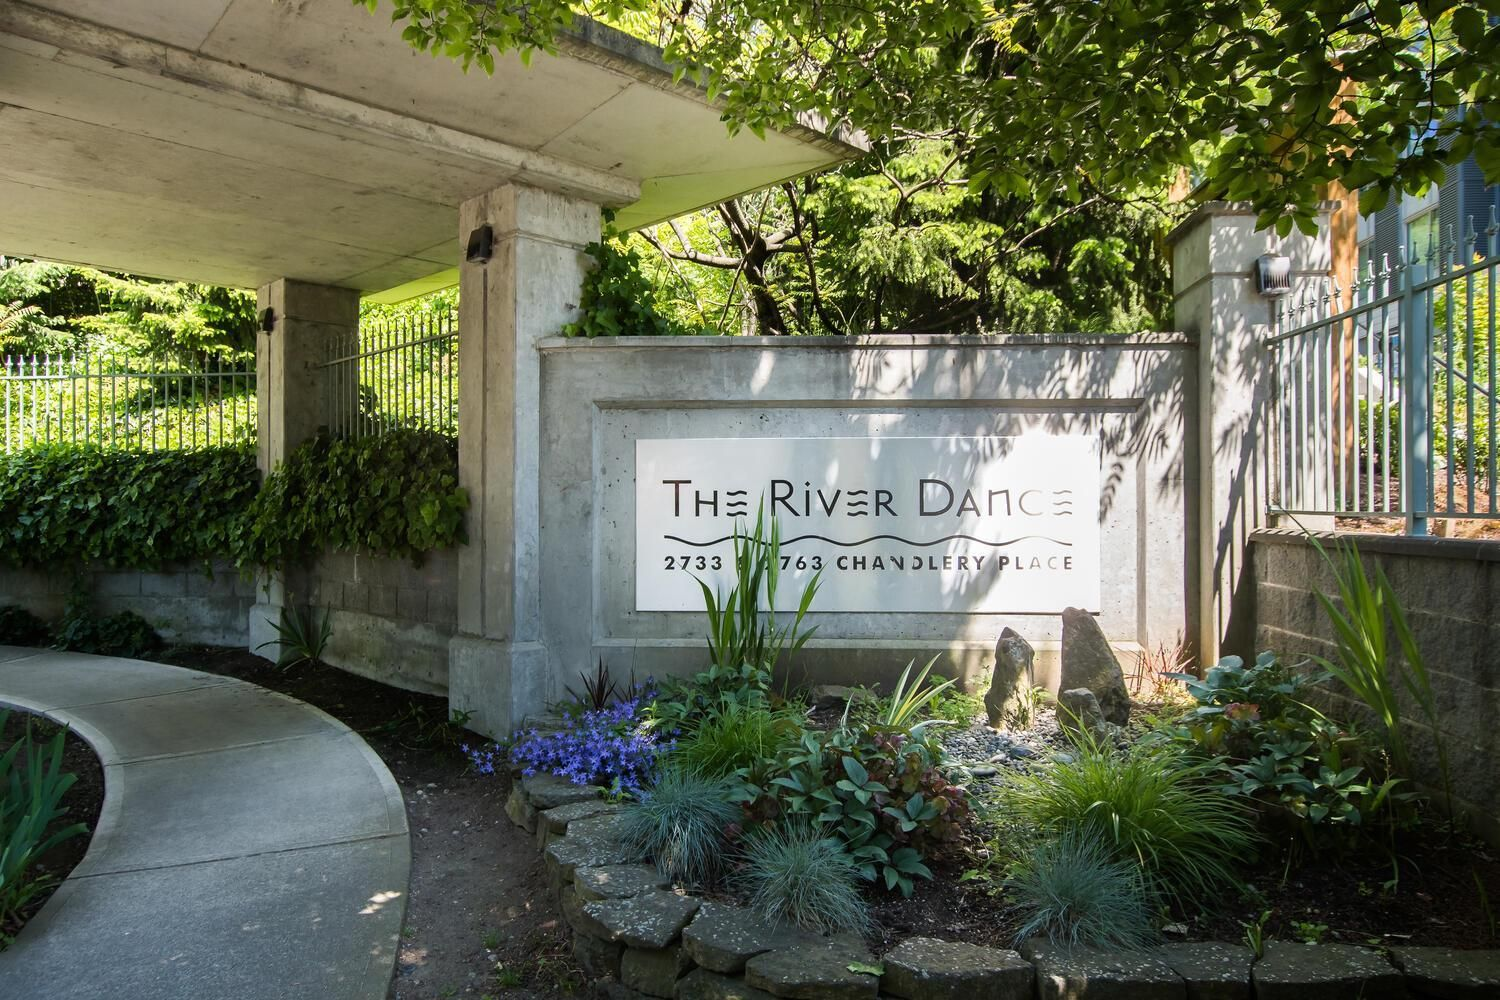 """Main Photo: 310 2763 CHANDLERY Place in Vancouver: South Marine Condo for sale in """"RIVER DANCE"""" (Vancouver East)  : MLS®# R2595307"""